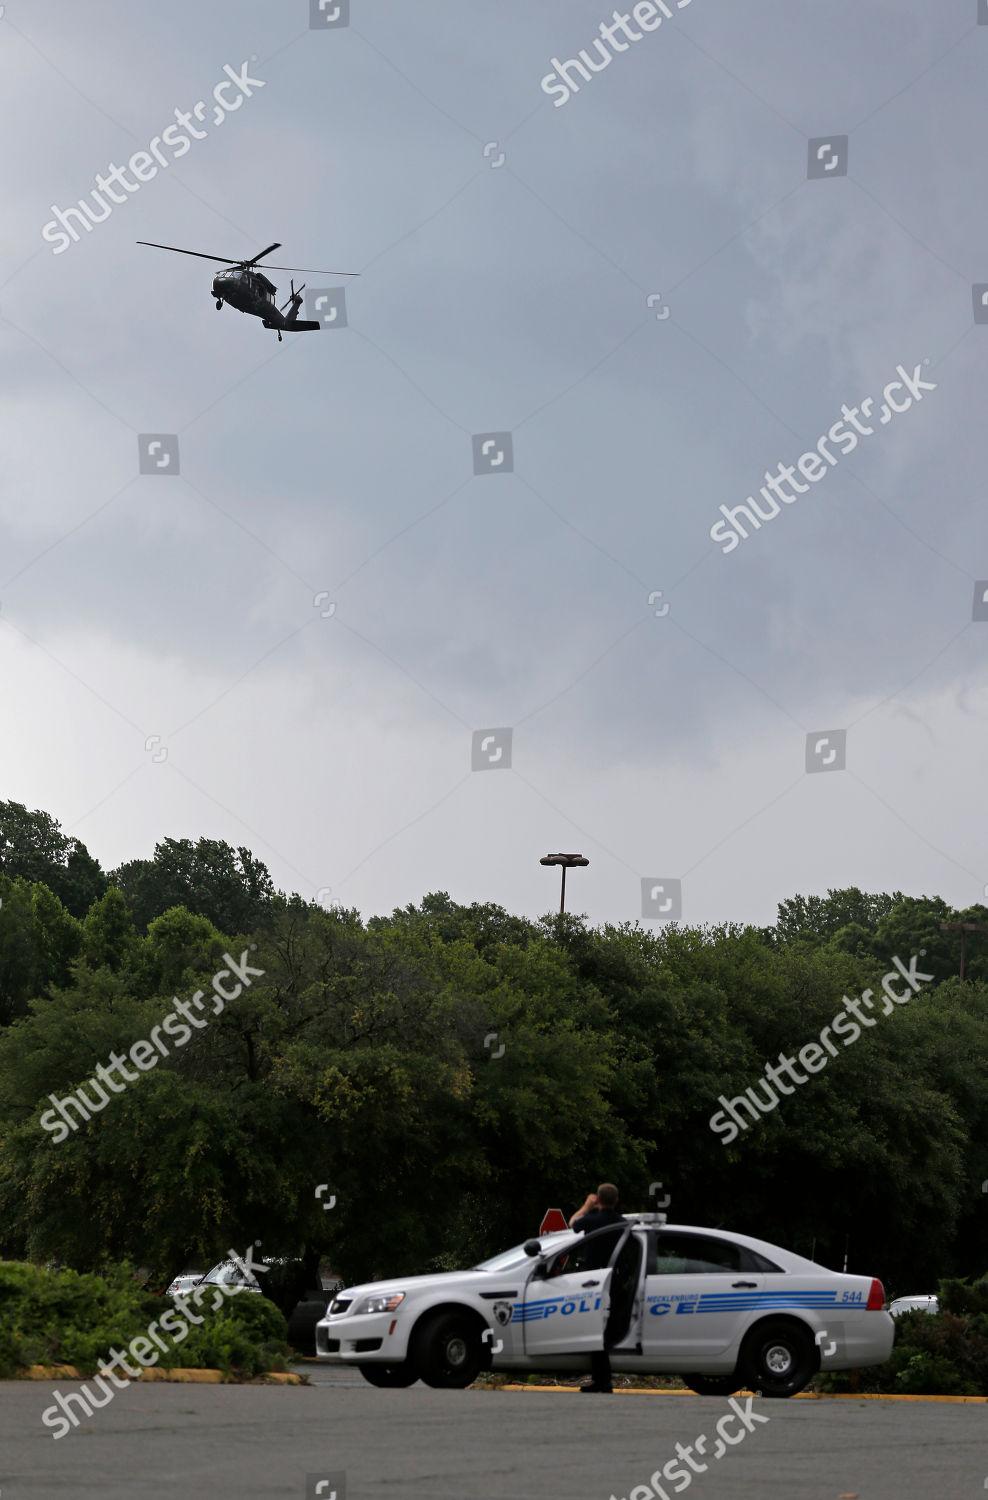 North Carolina National Guard Blackhawk helicopter carrying